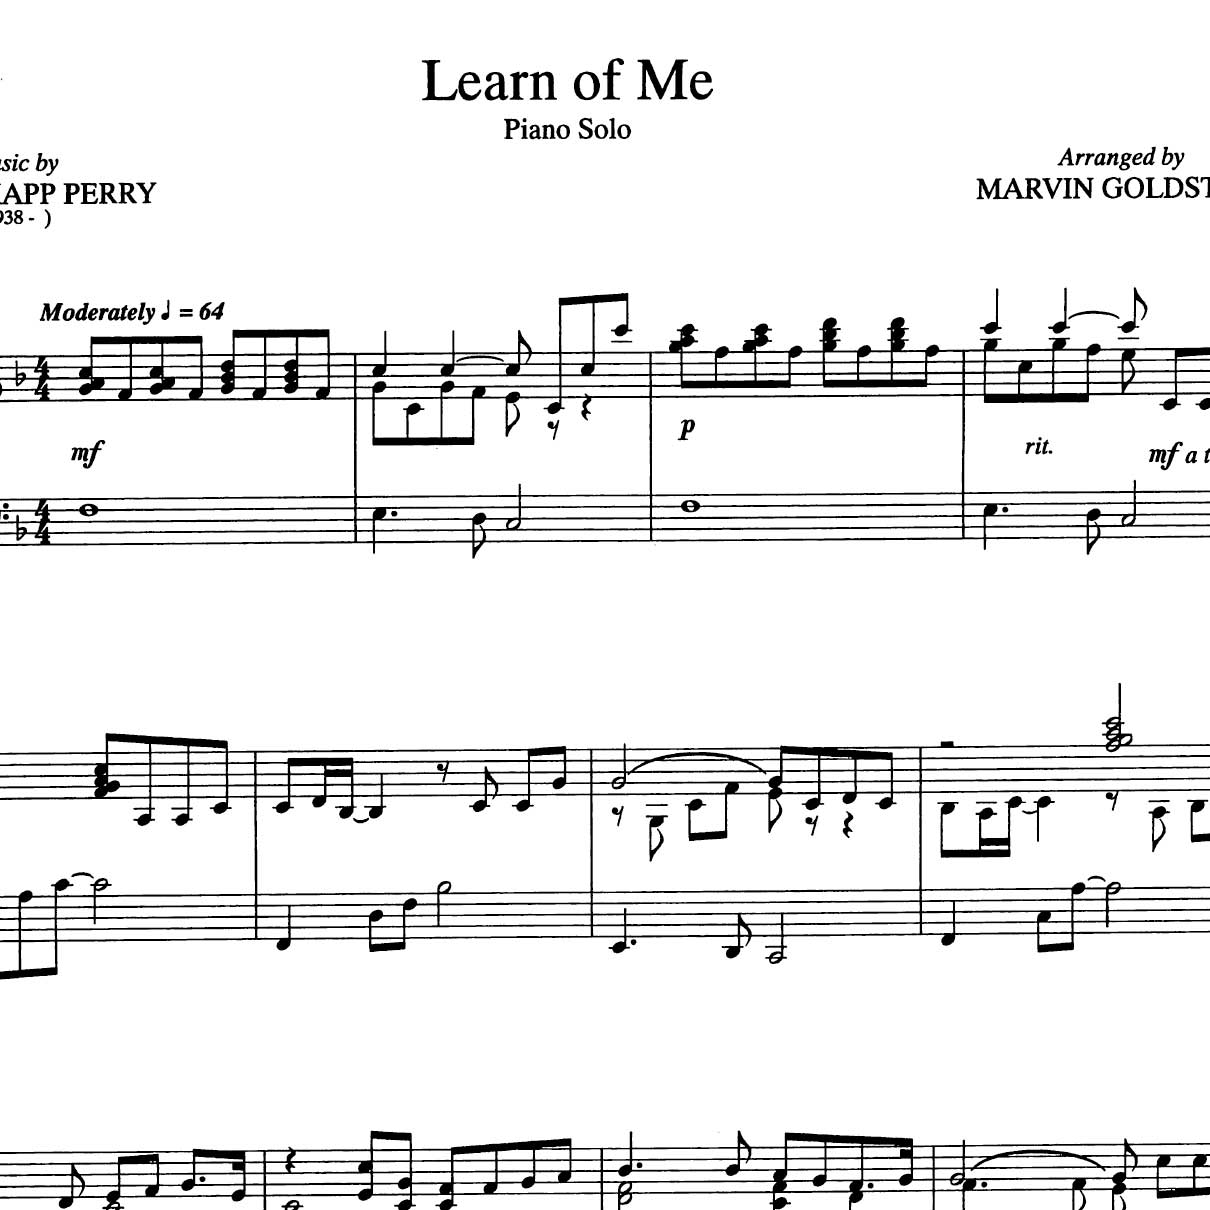 learn of me sheet music pdf